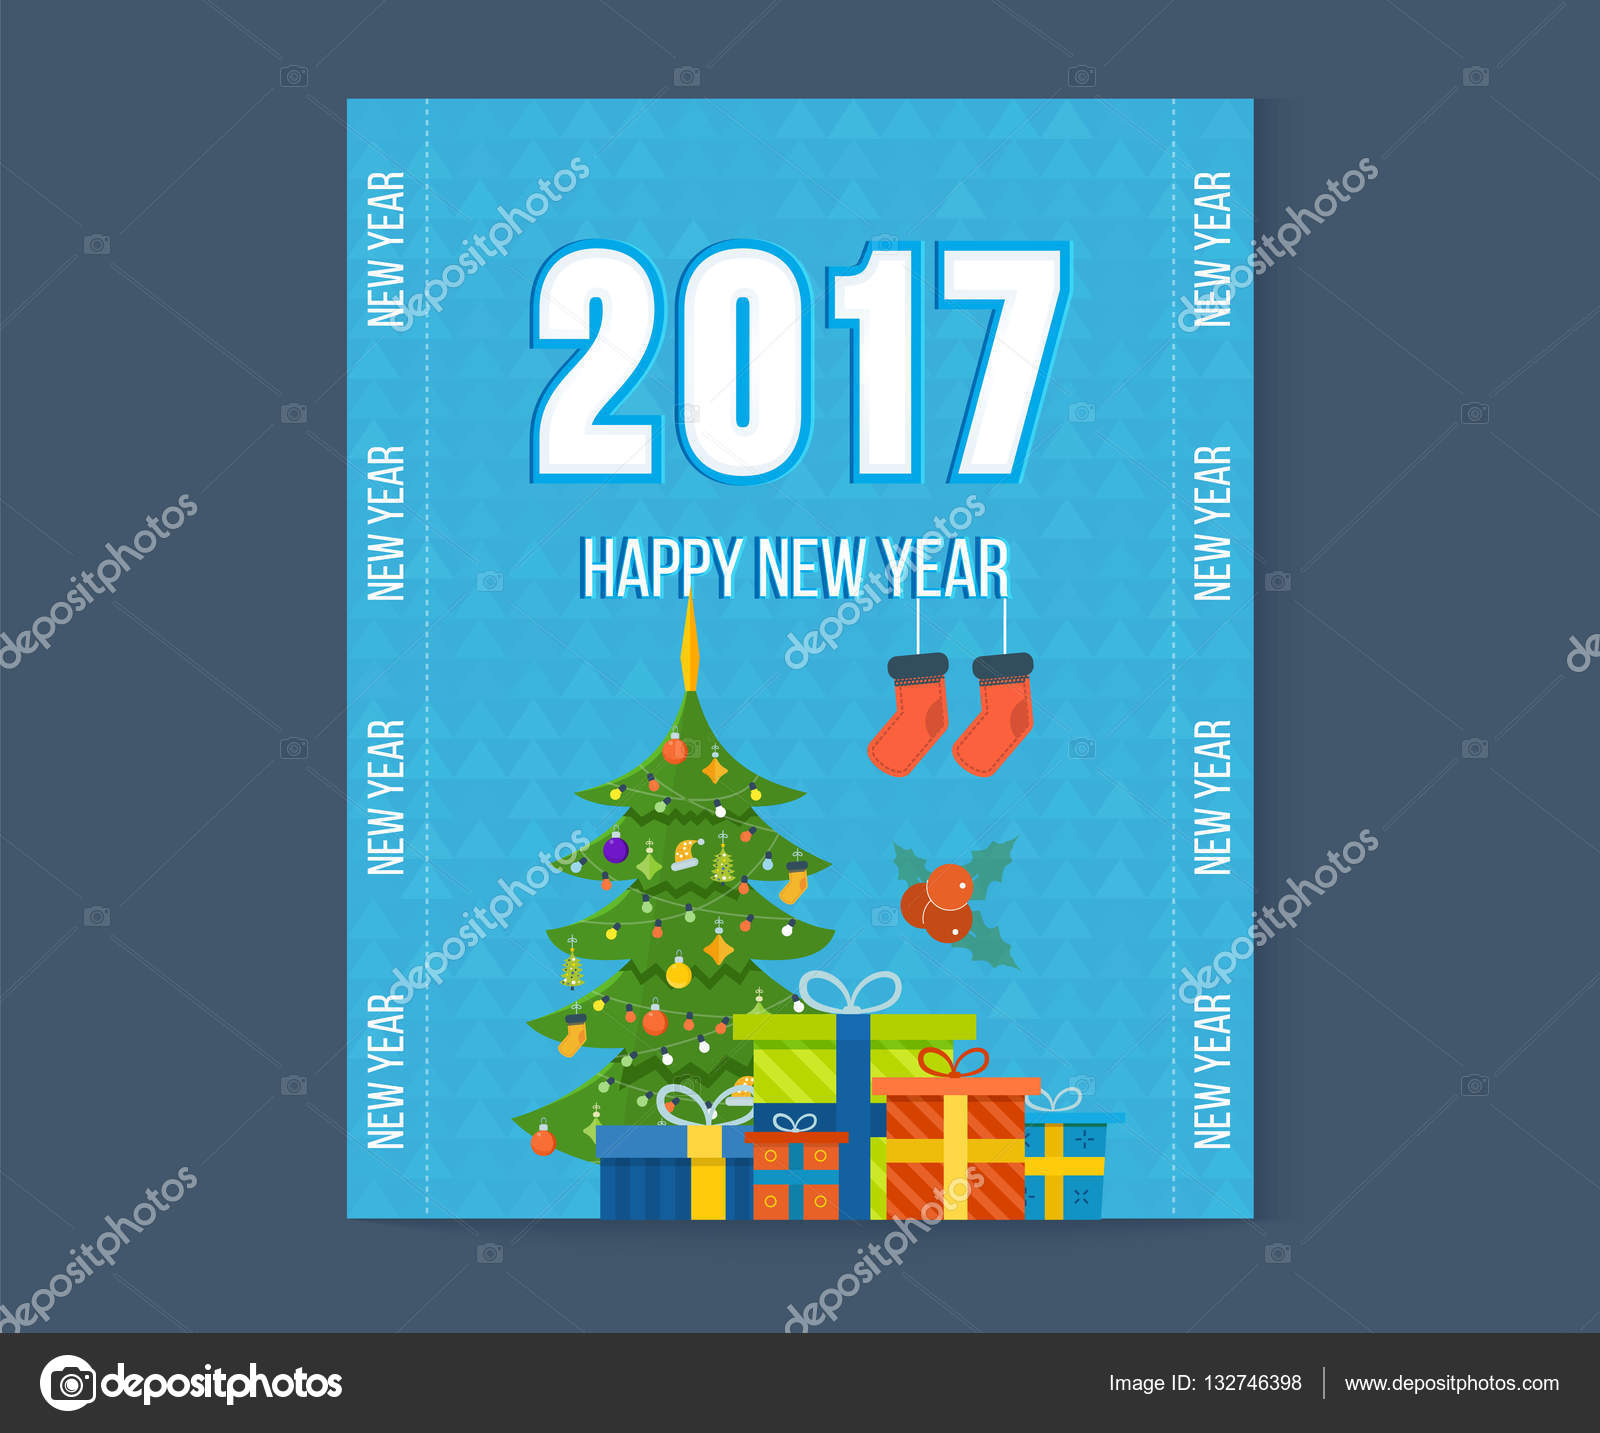 Merry Christmas Happy New Year Greetings Card With Winter